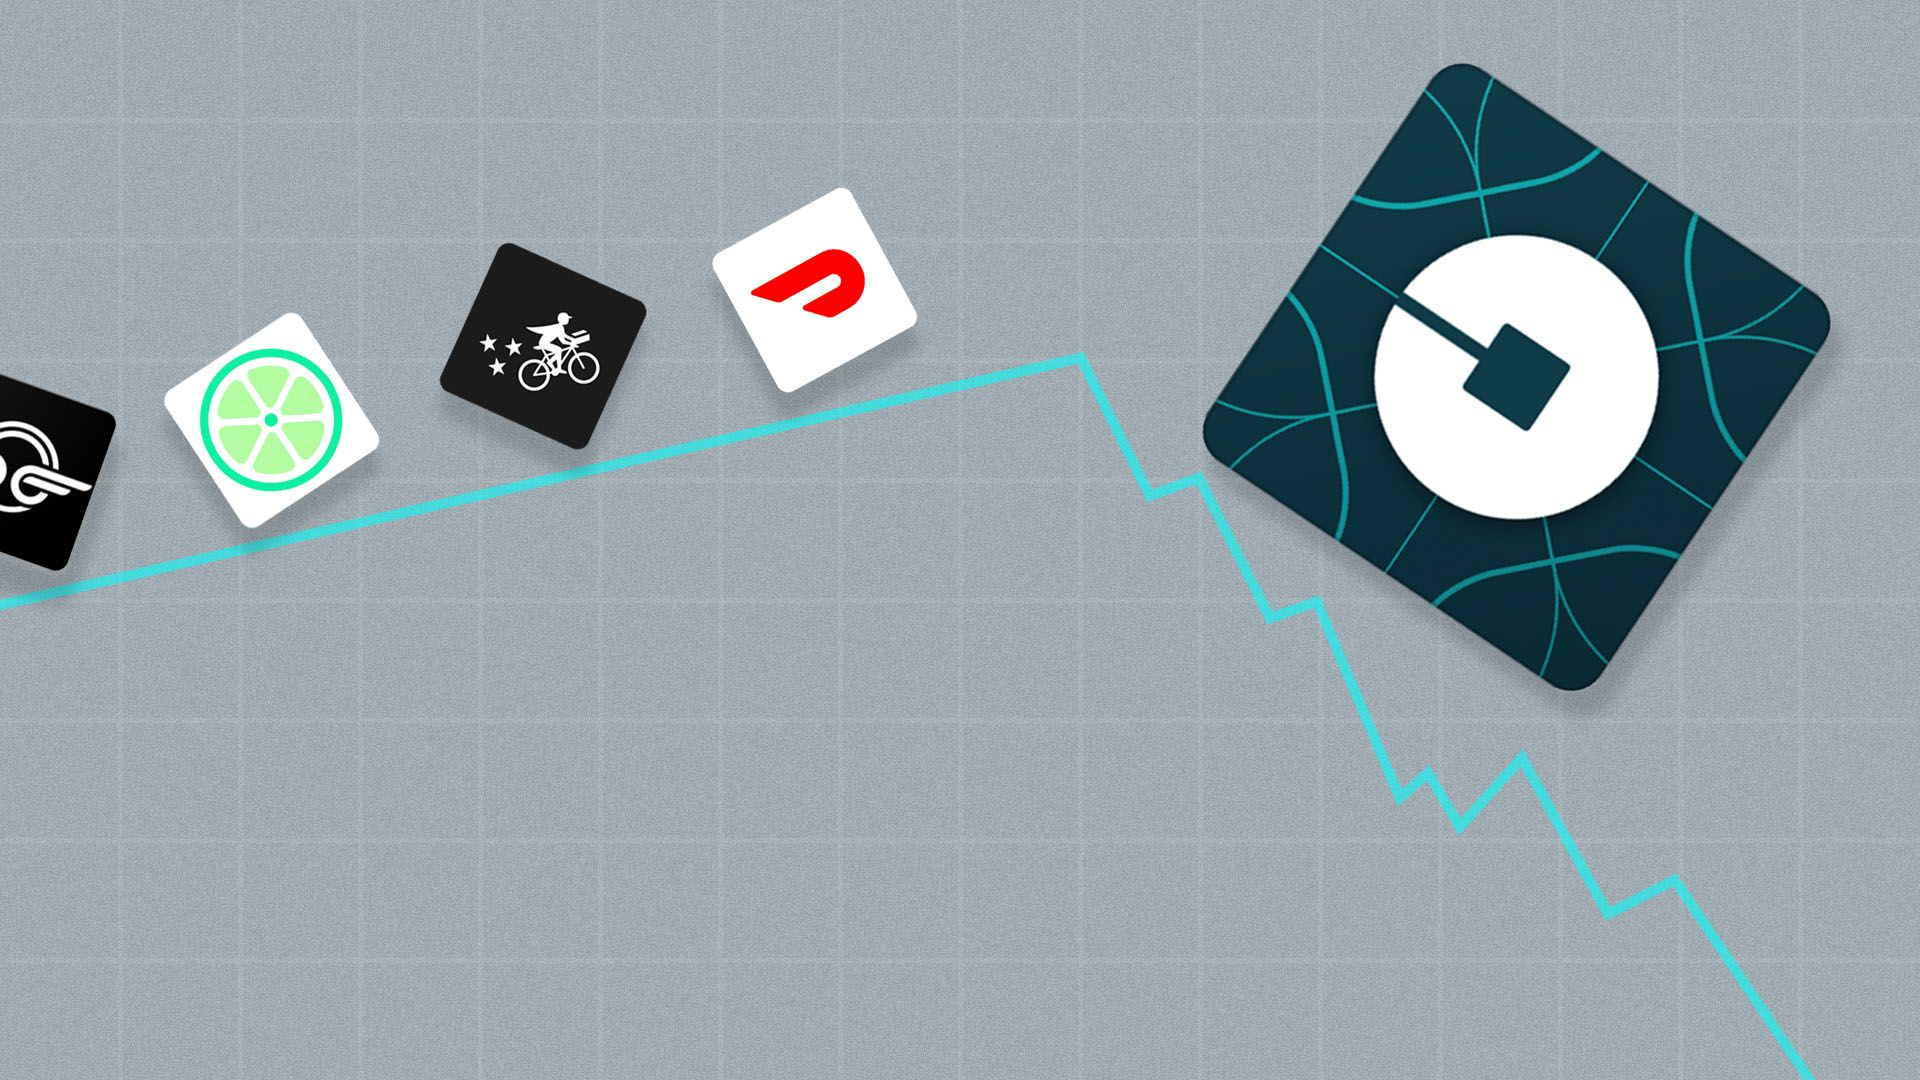 Illustration of the Uber logo falling off a stock chart cliff, with the logos for Doordash, Postmates, Lime, and Bird following behind